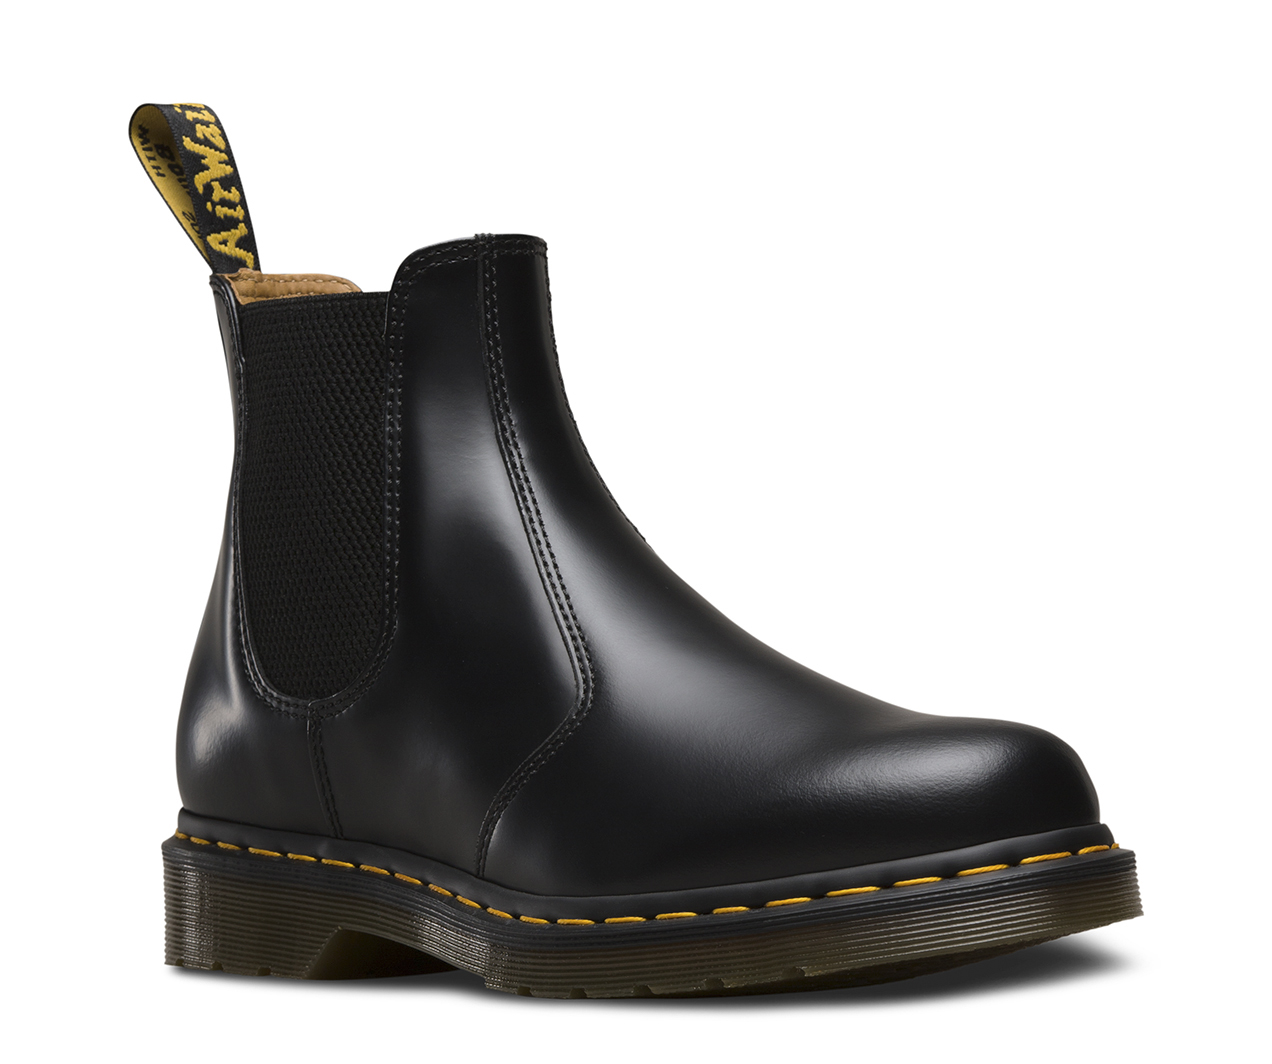 Footlocker Fotos Dr Martens Chelsea Boot Black Smooth Wiki Barato 0uNvV3Wa